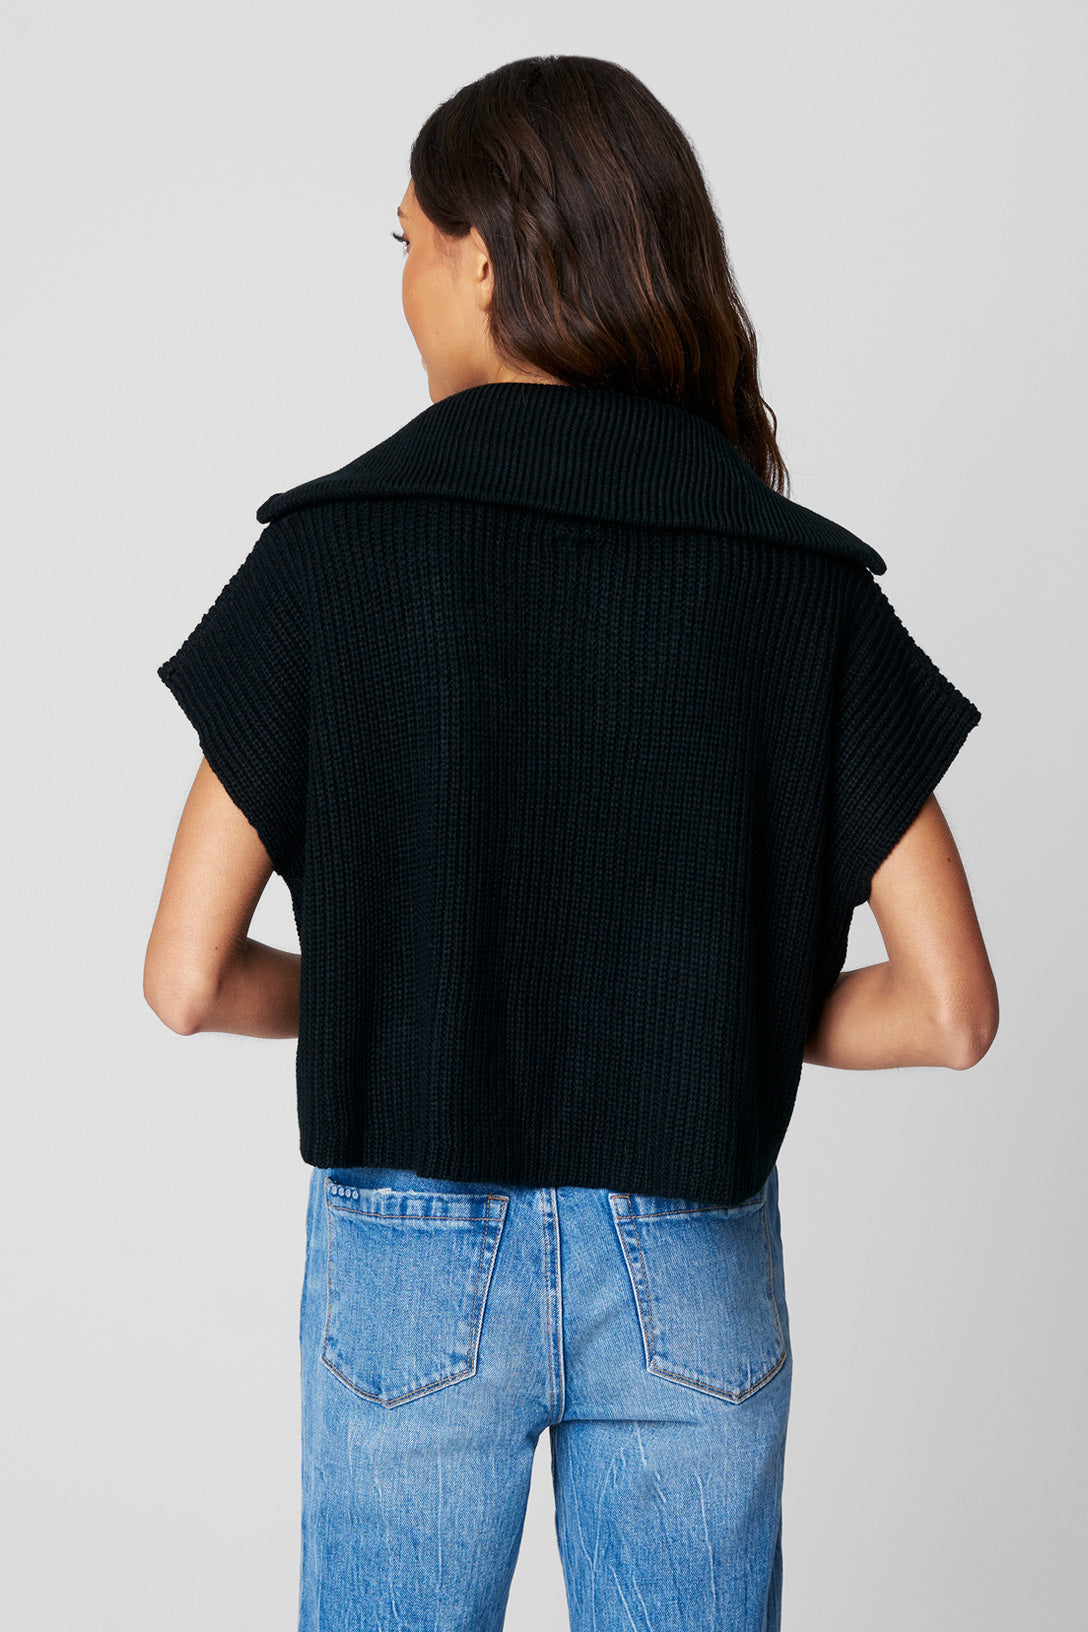 Note To Self Sweater | Blank NYC